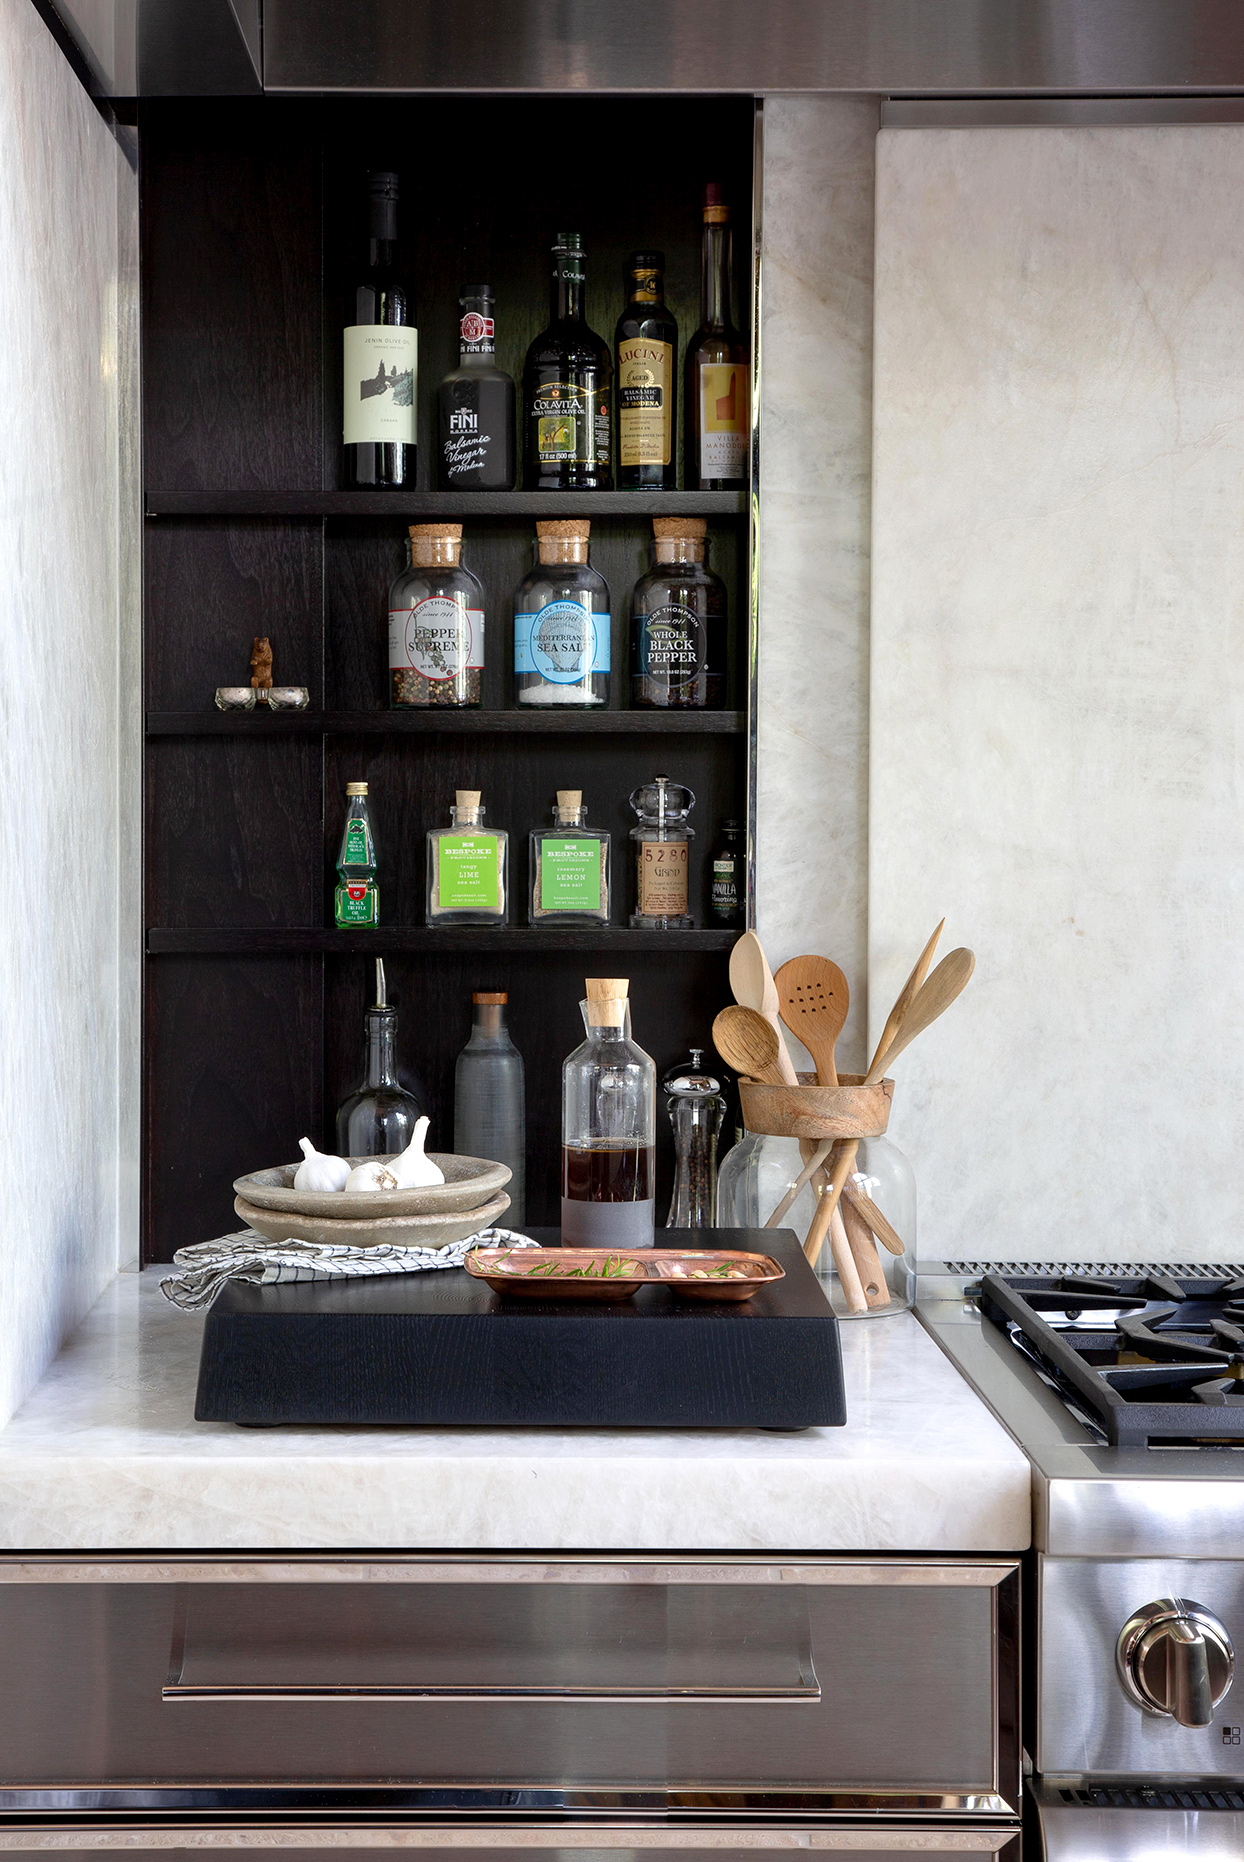 black kitchen shelf with spices